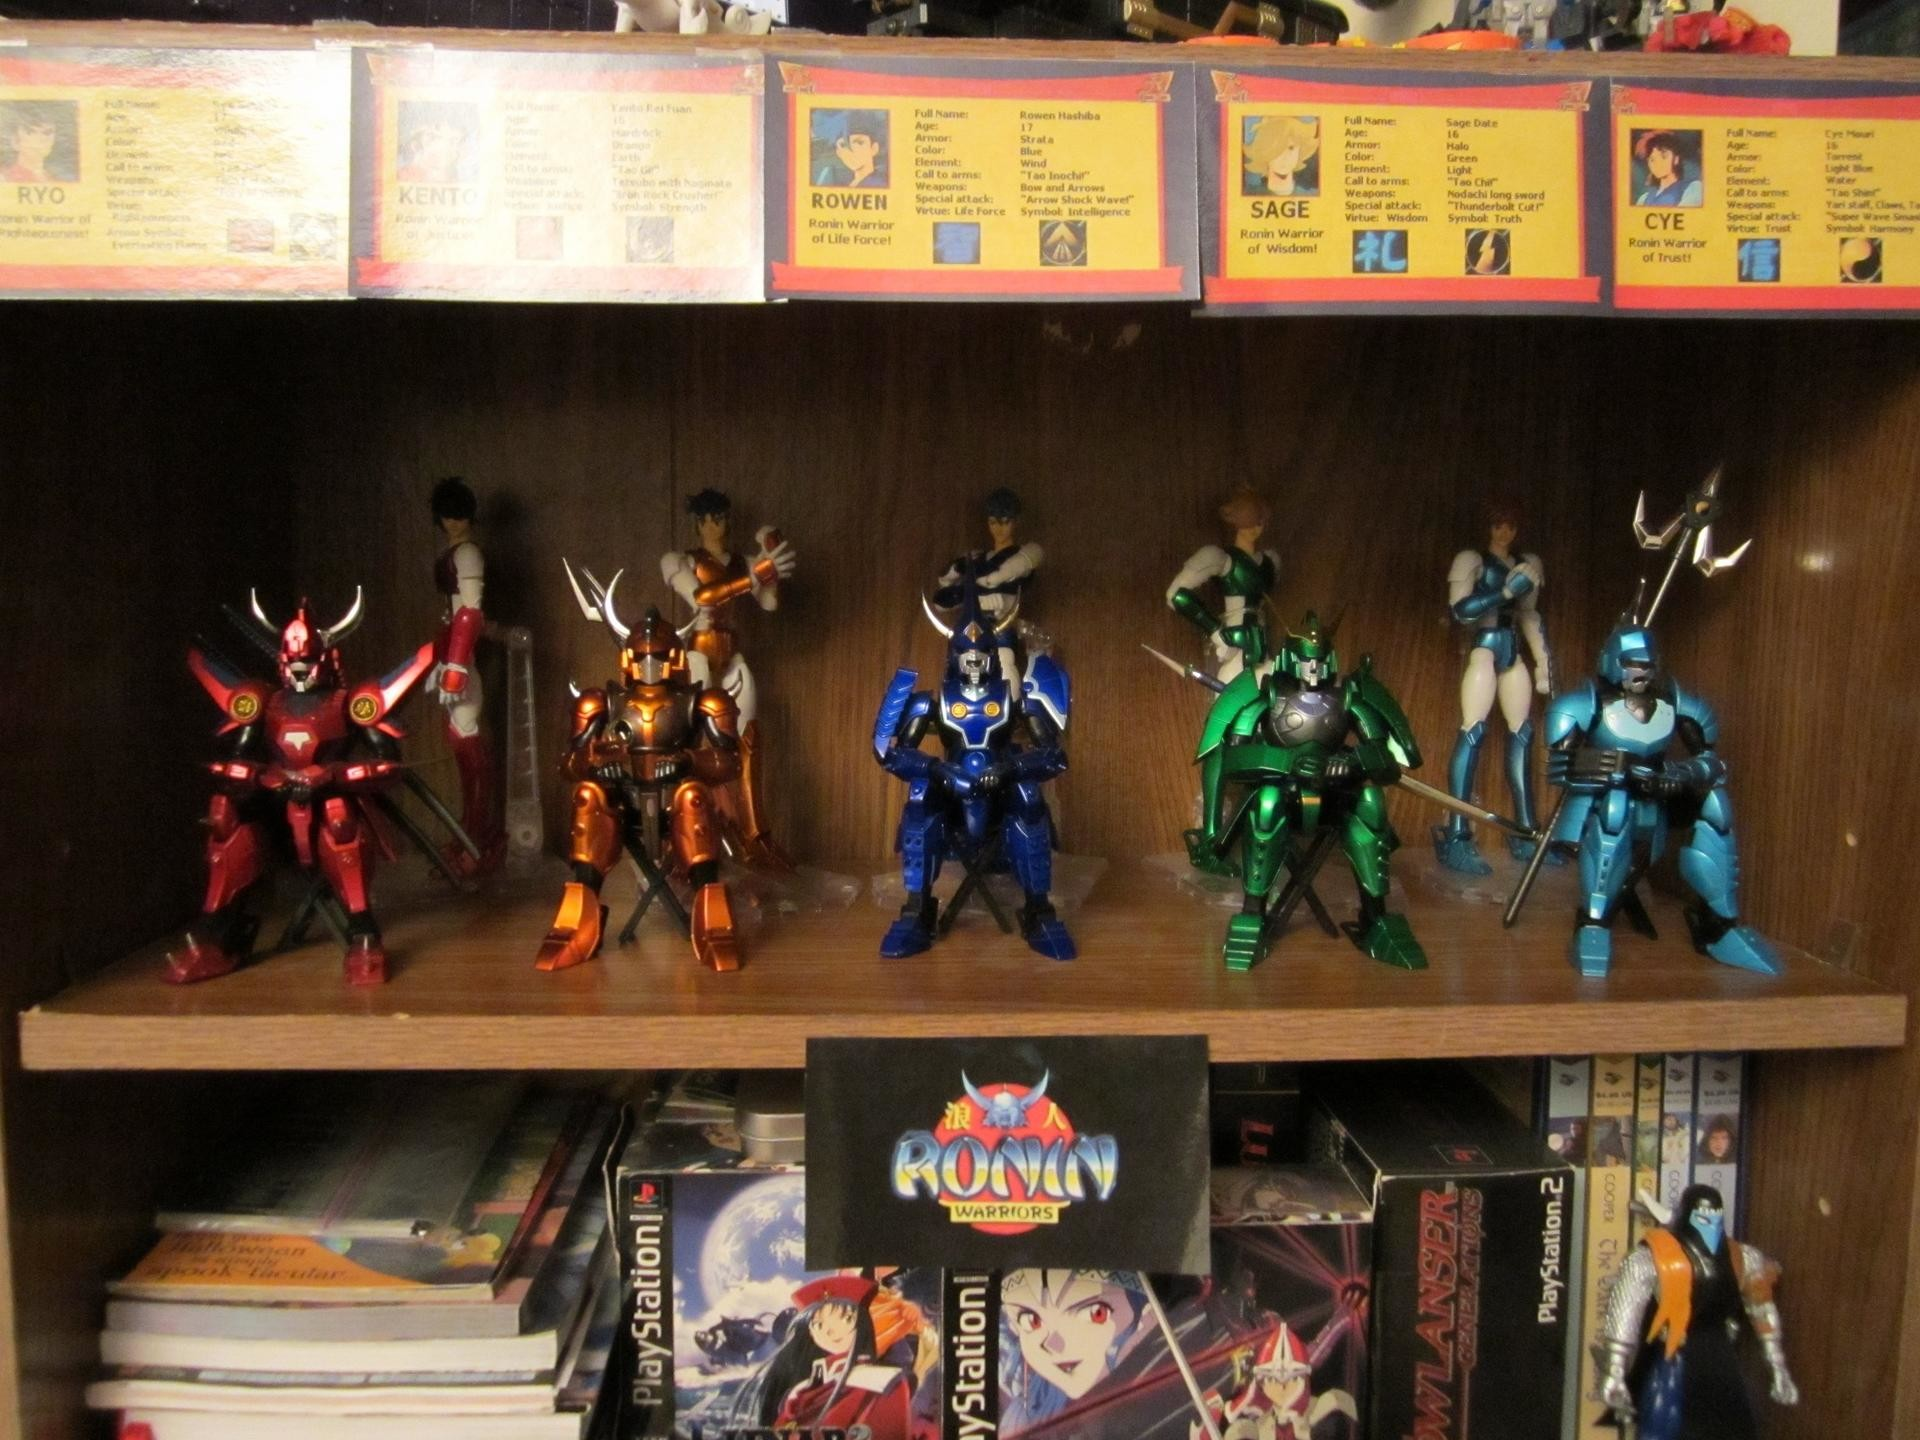 1920x1440 RONIN WARRIORS! New Armor Plus Toy Line! - Page 152 - TFW2005 .